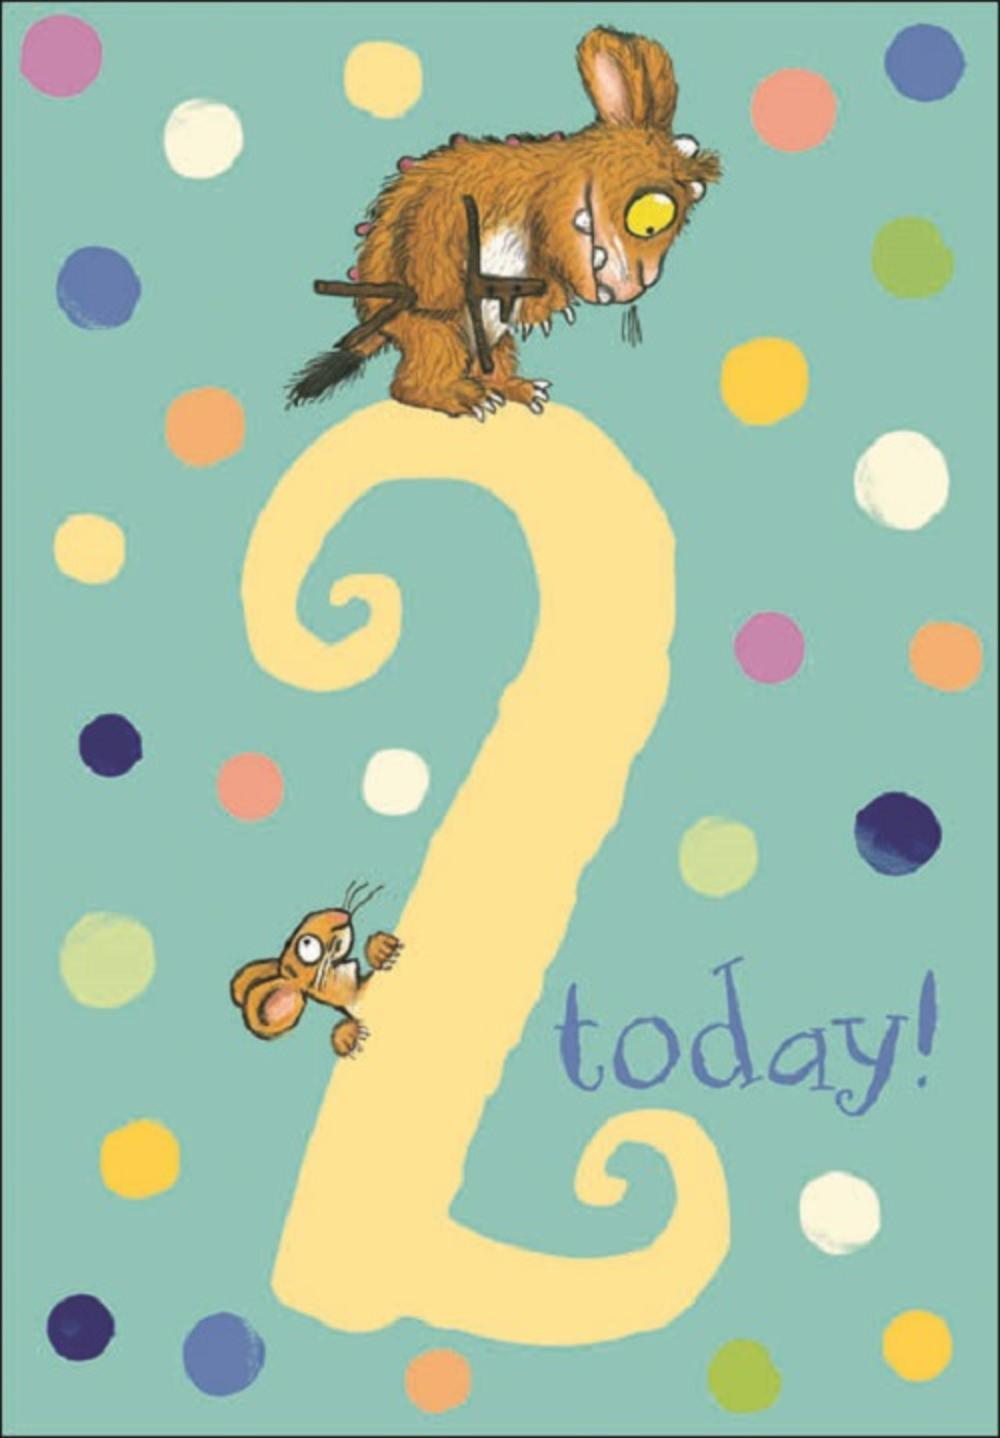 Gruffalo two today 2nd birthday greeting card cards love kates gruffalo two today 2nd birthday greeting card bookmarktalkfo Choice Image